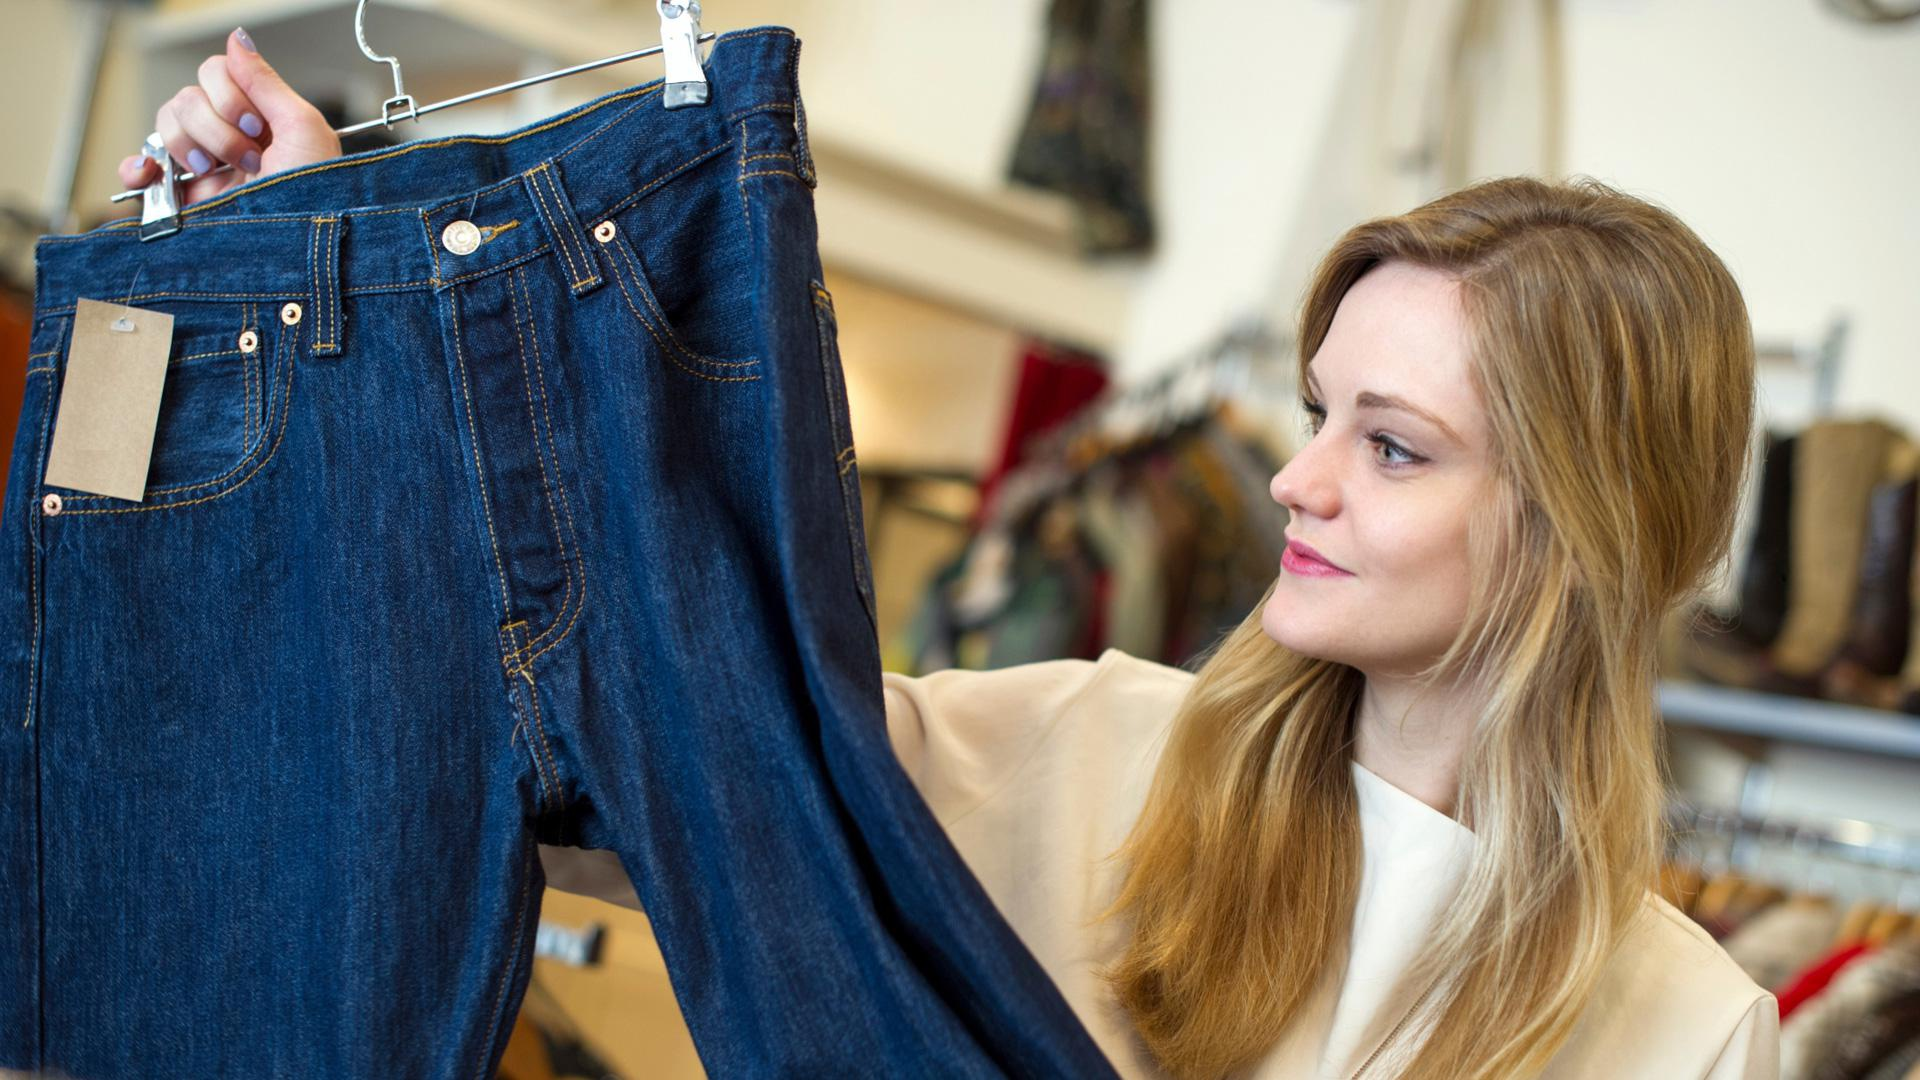 Your butt will love this guide to jeans